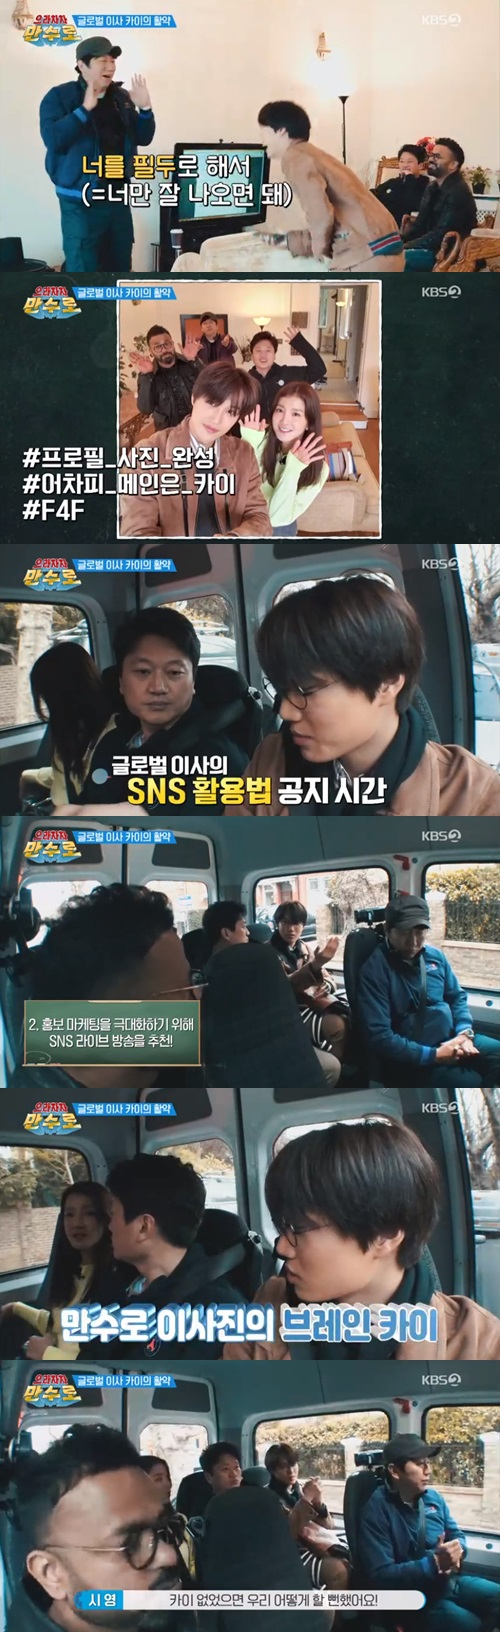 """<p>'With online car car only as' EXO Kai best means to promote actively to the ideas presented.</p><p>5 days afternoon broadcast KBS2 Fly to the Sky 'with online car car create water'in an efficient team operations head for the back members appear.</p><p>This day, Kai is a """"promotional account, Propyl group, once the mark up game is not good because you know""""he asked. In this Golden harvest as """"whats going on here. Four off the year well,""""he said to laughter induced was.</p><p>Golden Harvest is the phrase """"in my name as the person your friends go home,""""he said. As a gift holiday and South Koreas freshly prepared.</p><p>This Kai directly THINK PR strategy to me. Promotional marketing to maximize SNS live TV how he was.</p><p>This heard this movie is """"Kai the real brain is. If there was no what was obvious because""""high praise were not spared.</p>"""